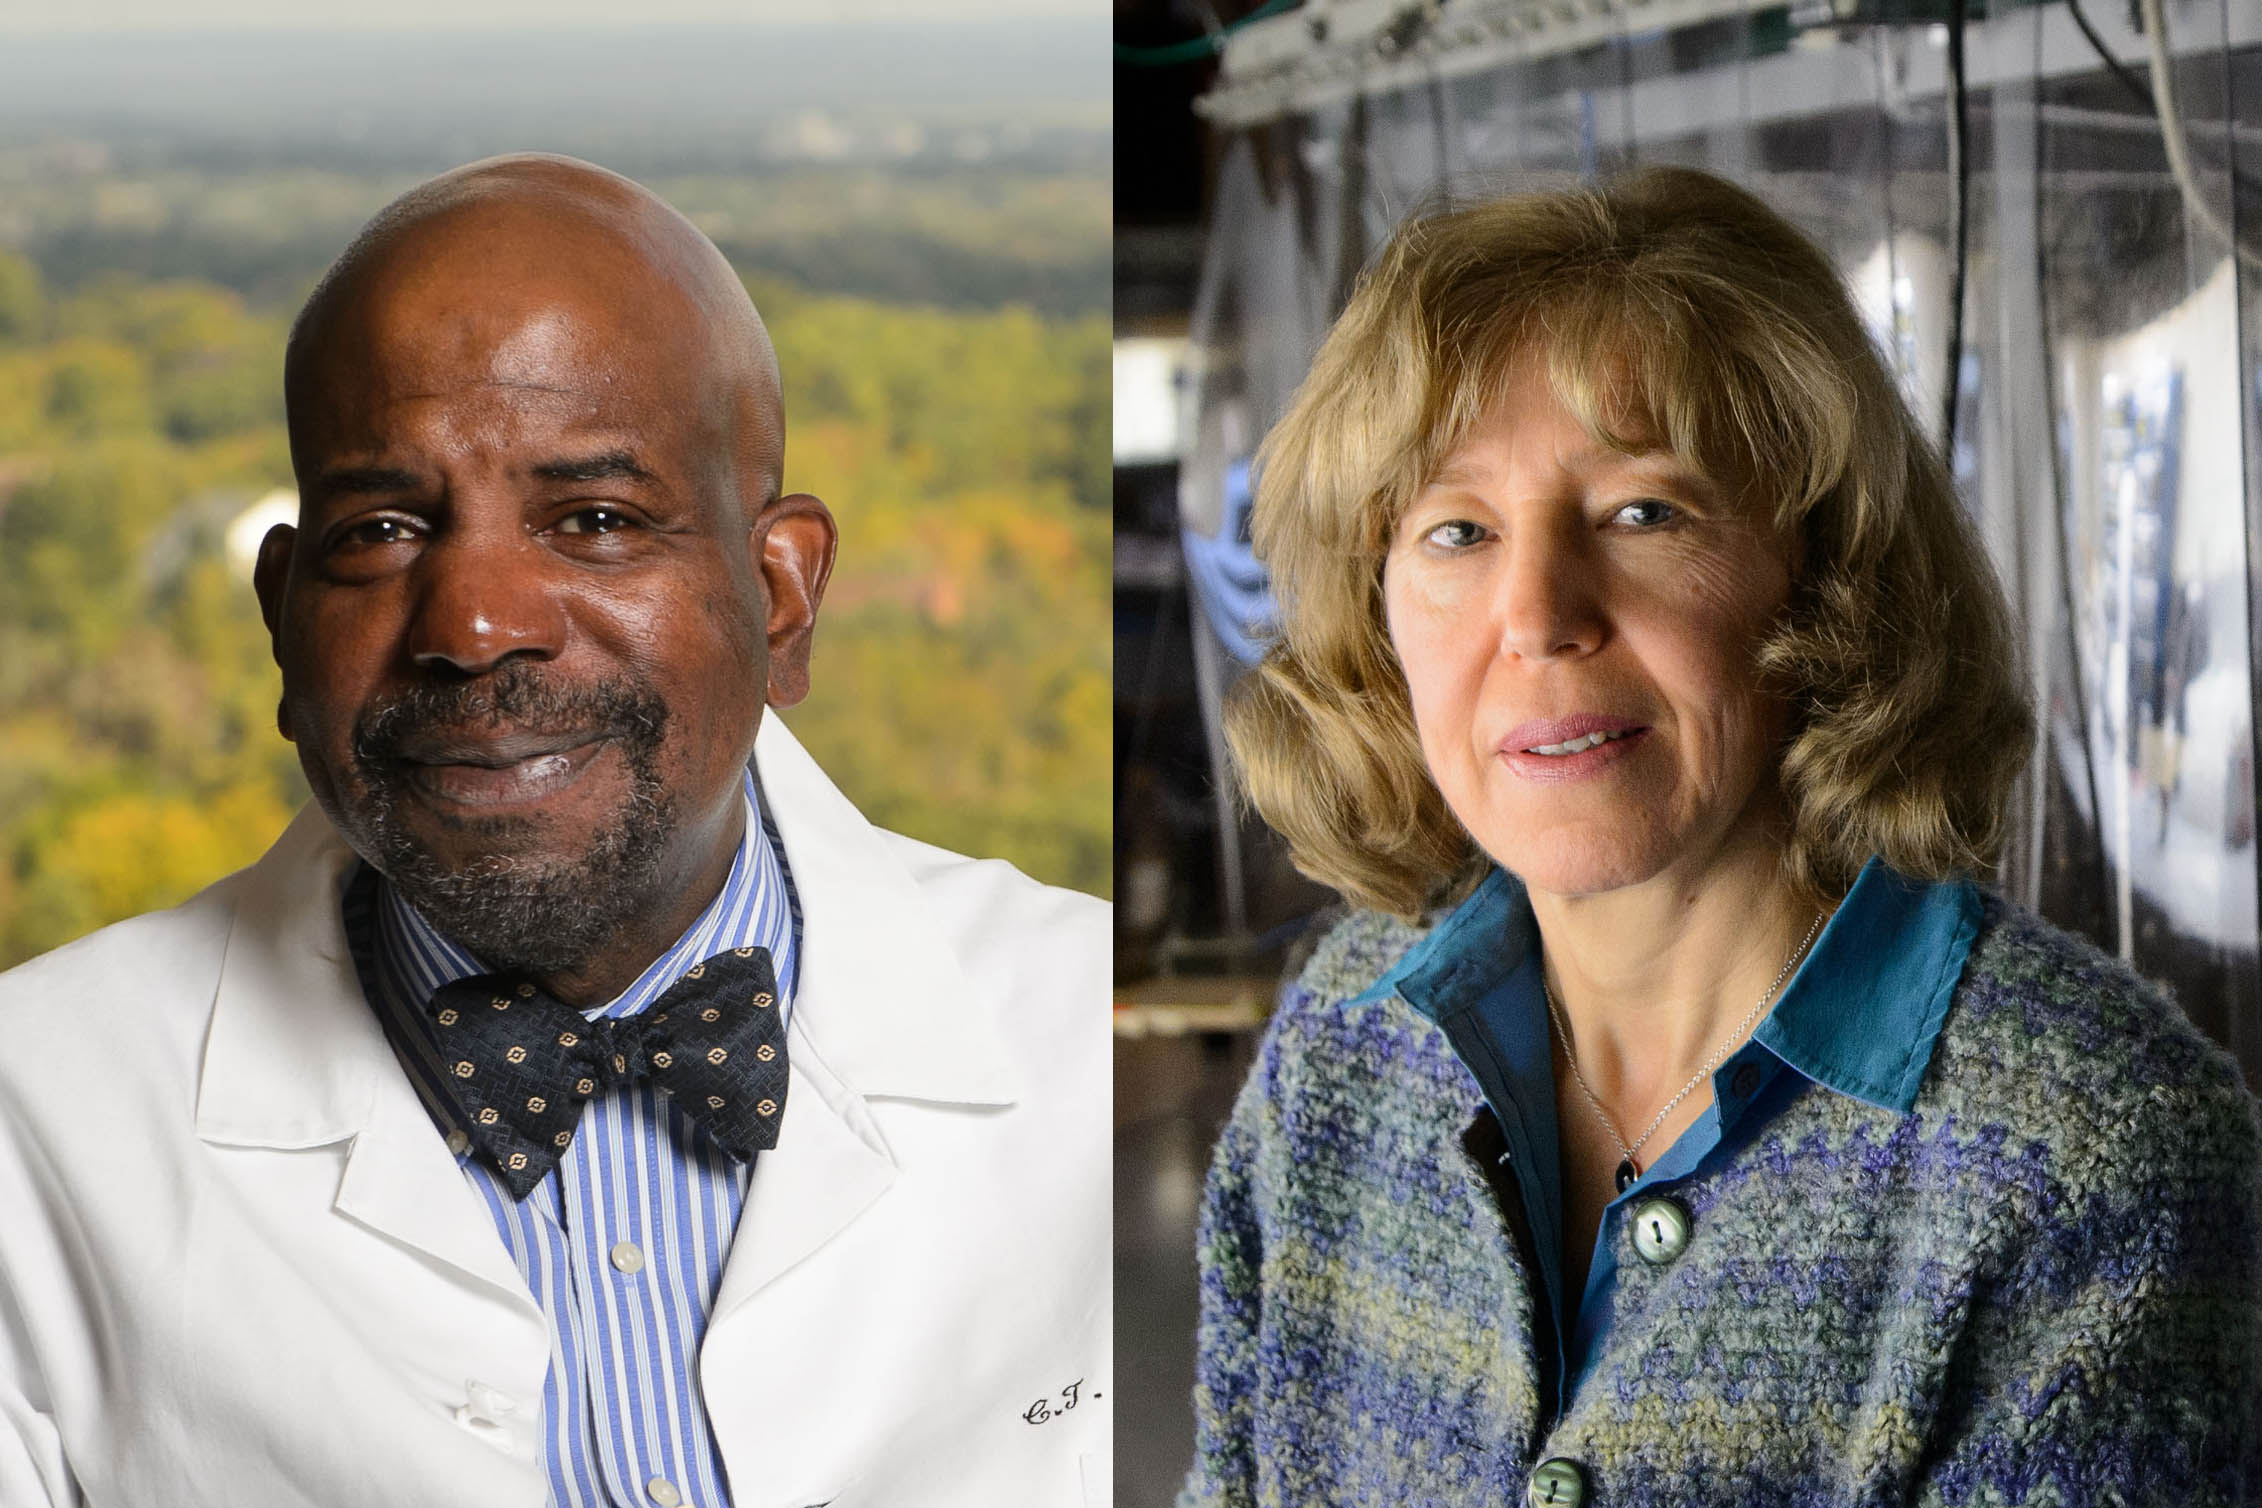 Dr. Cato Laurencin, left, and physics professor Nora Berrah have been elected to the American Academy of Arts and Sciences, Class of 2019. (Peter Morenus/UConn Photos)